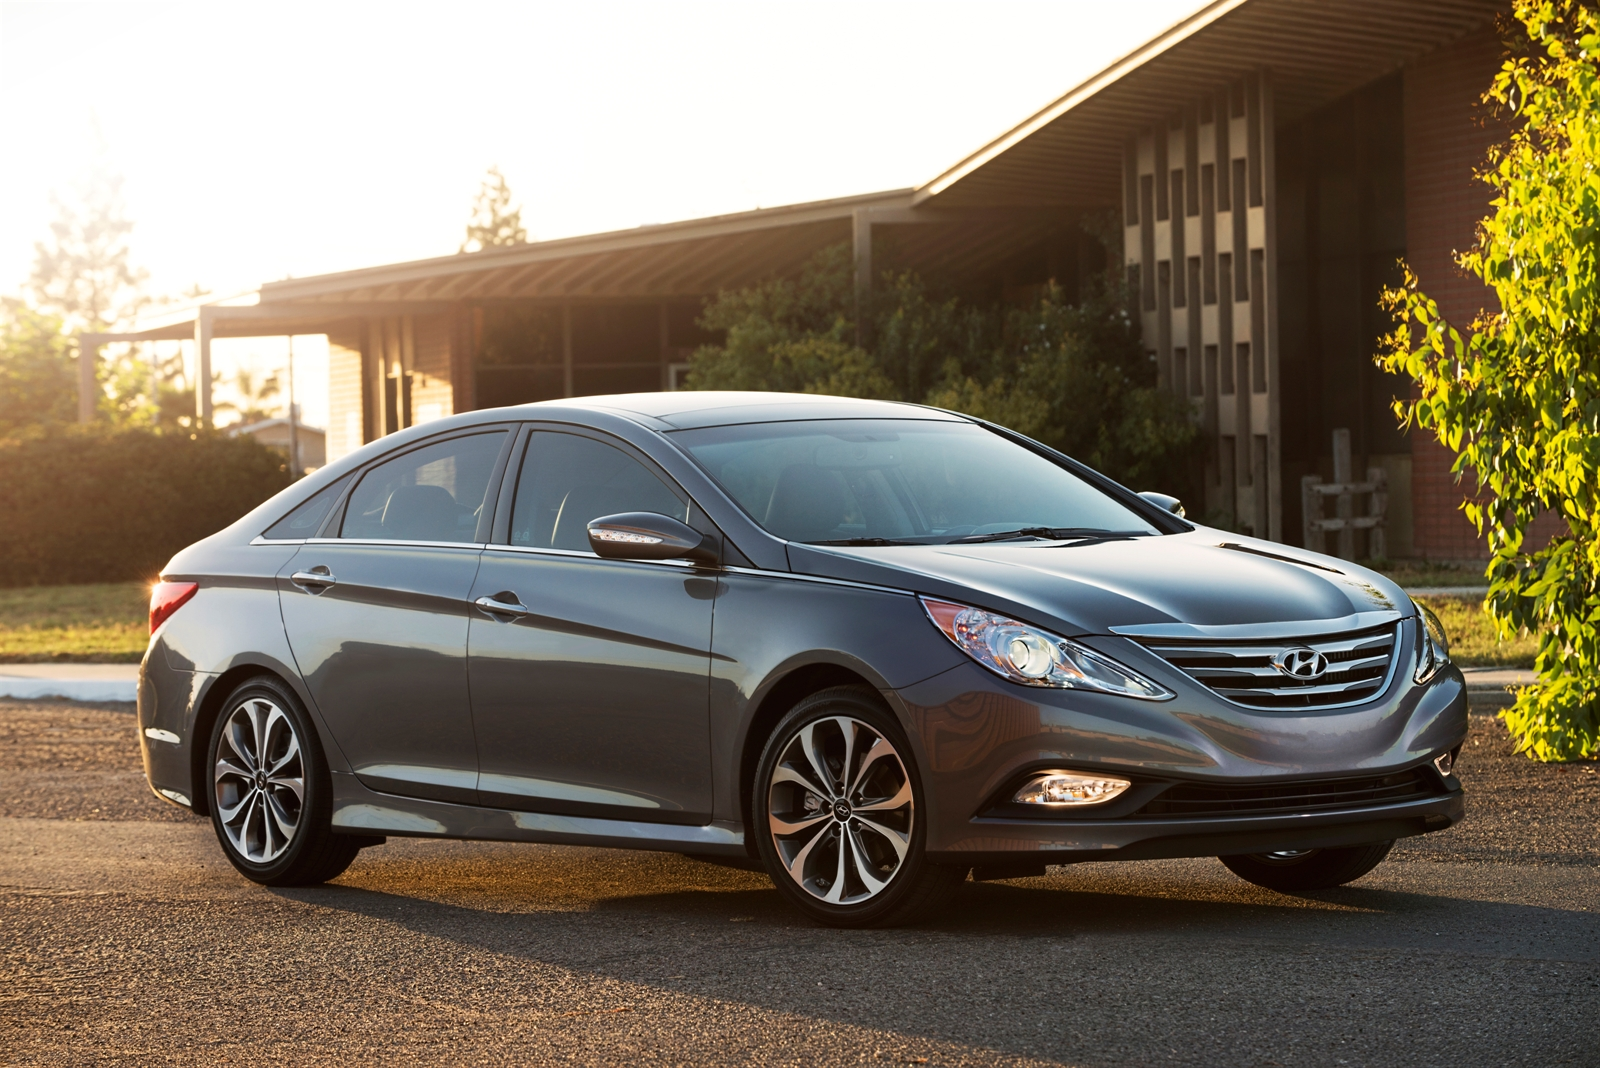 Hyundai Sonata Gas Mileage Overstated Again, In Korea This ...